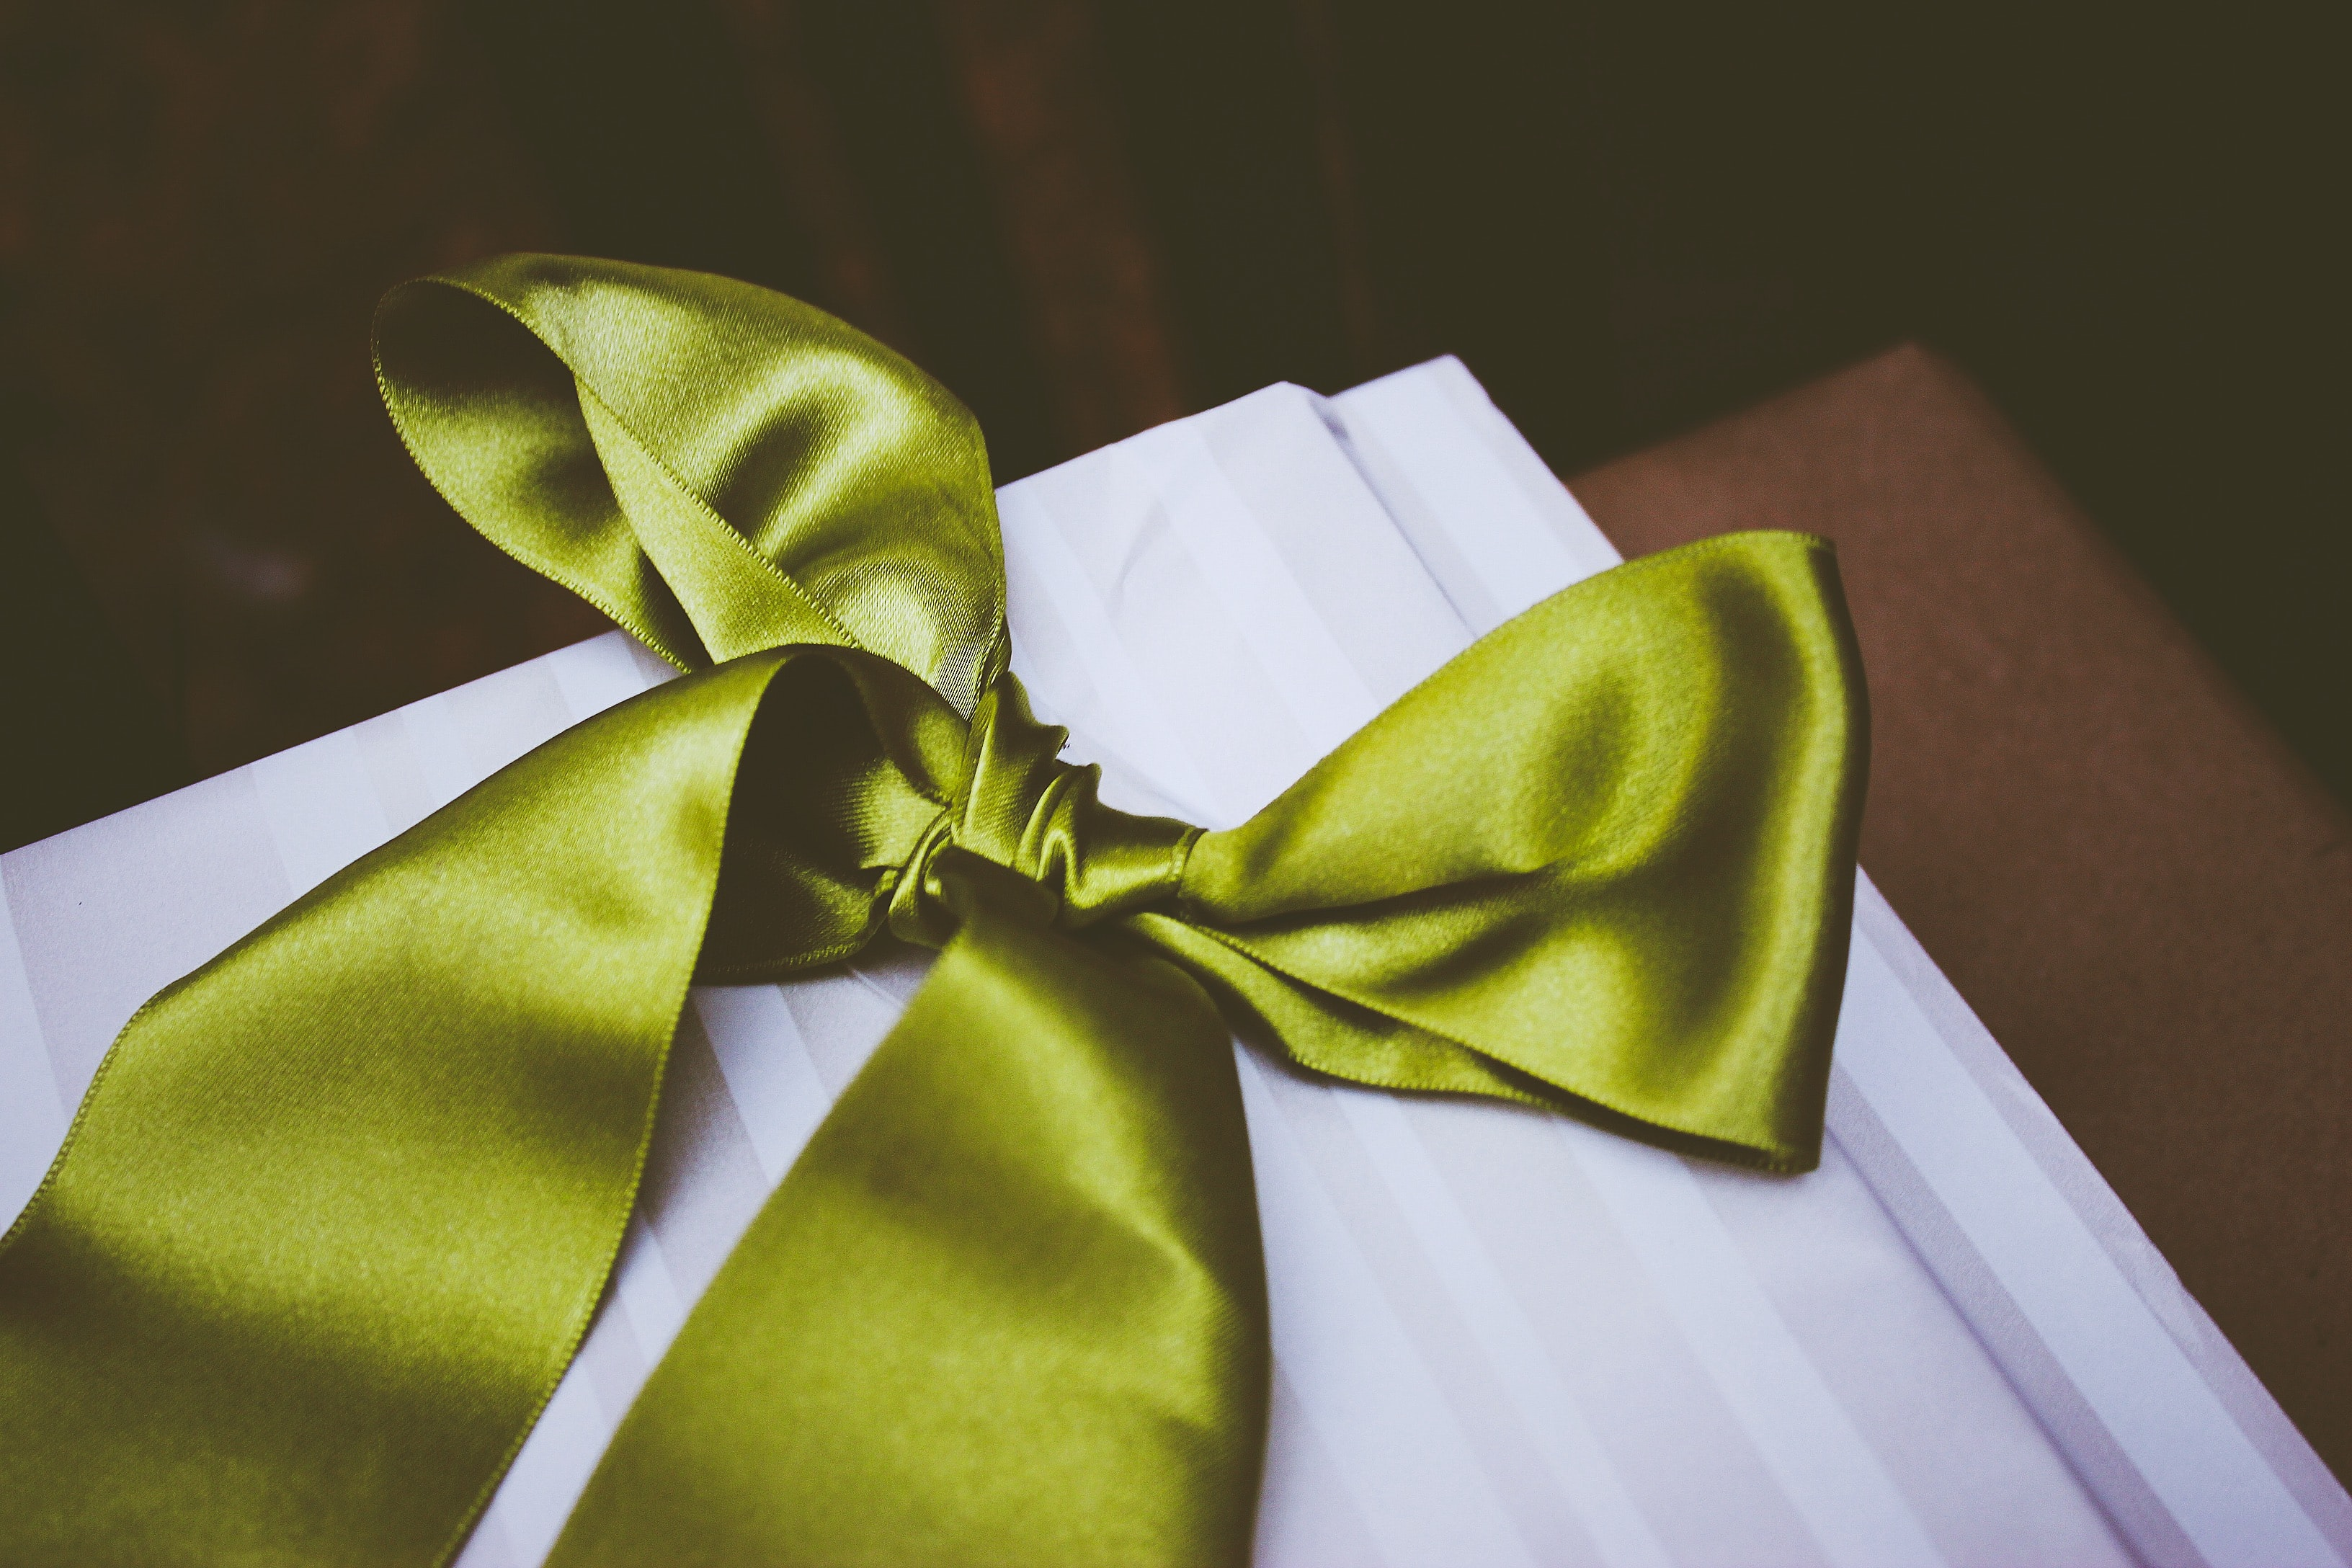 A green colored bow tie.